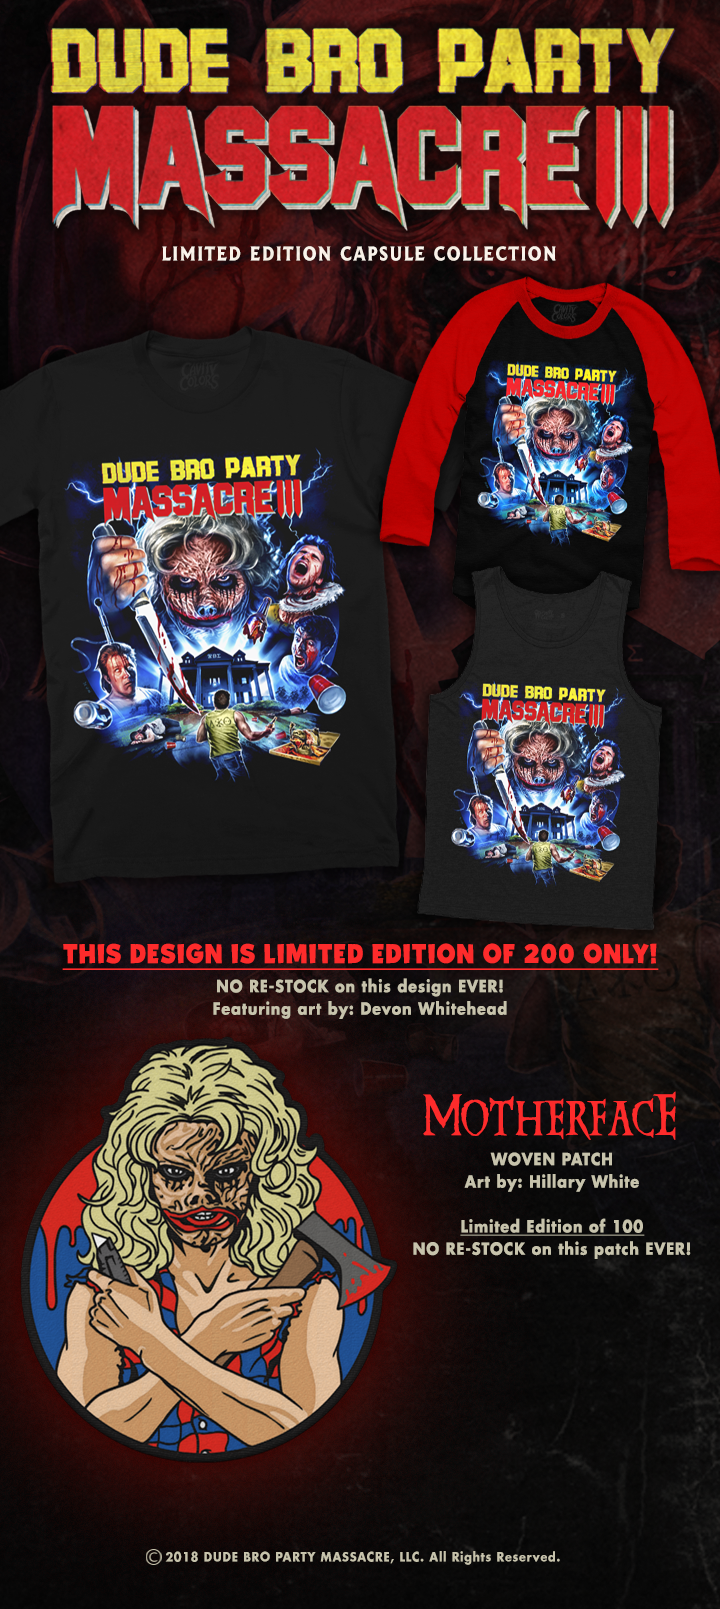 DUDE BRO PARTY MASSACRE III Limited Edition Capsule Collection